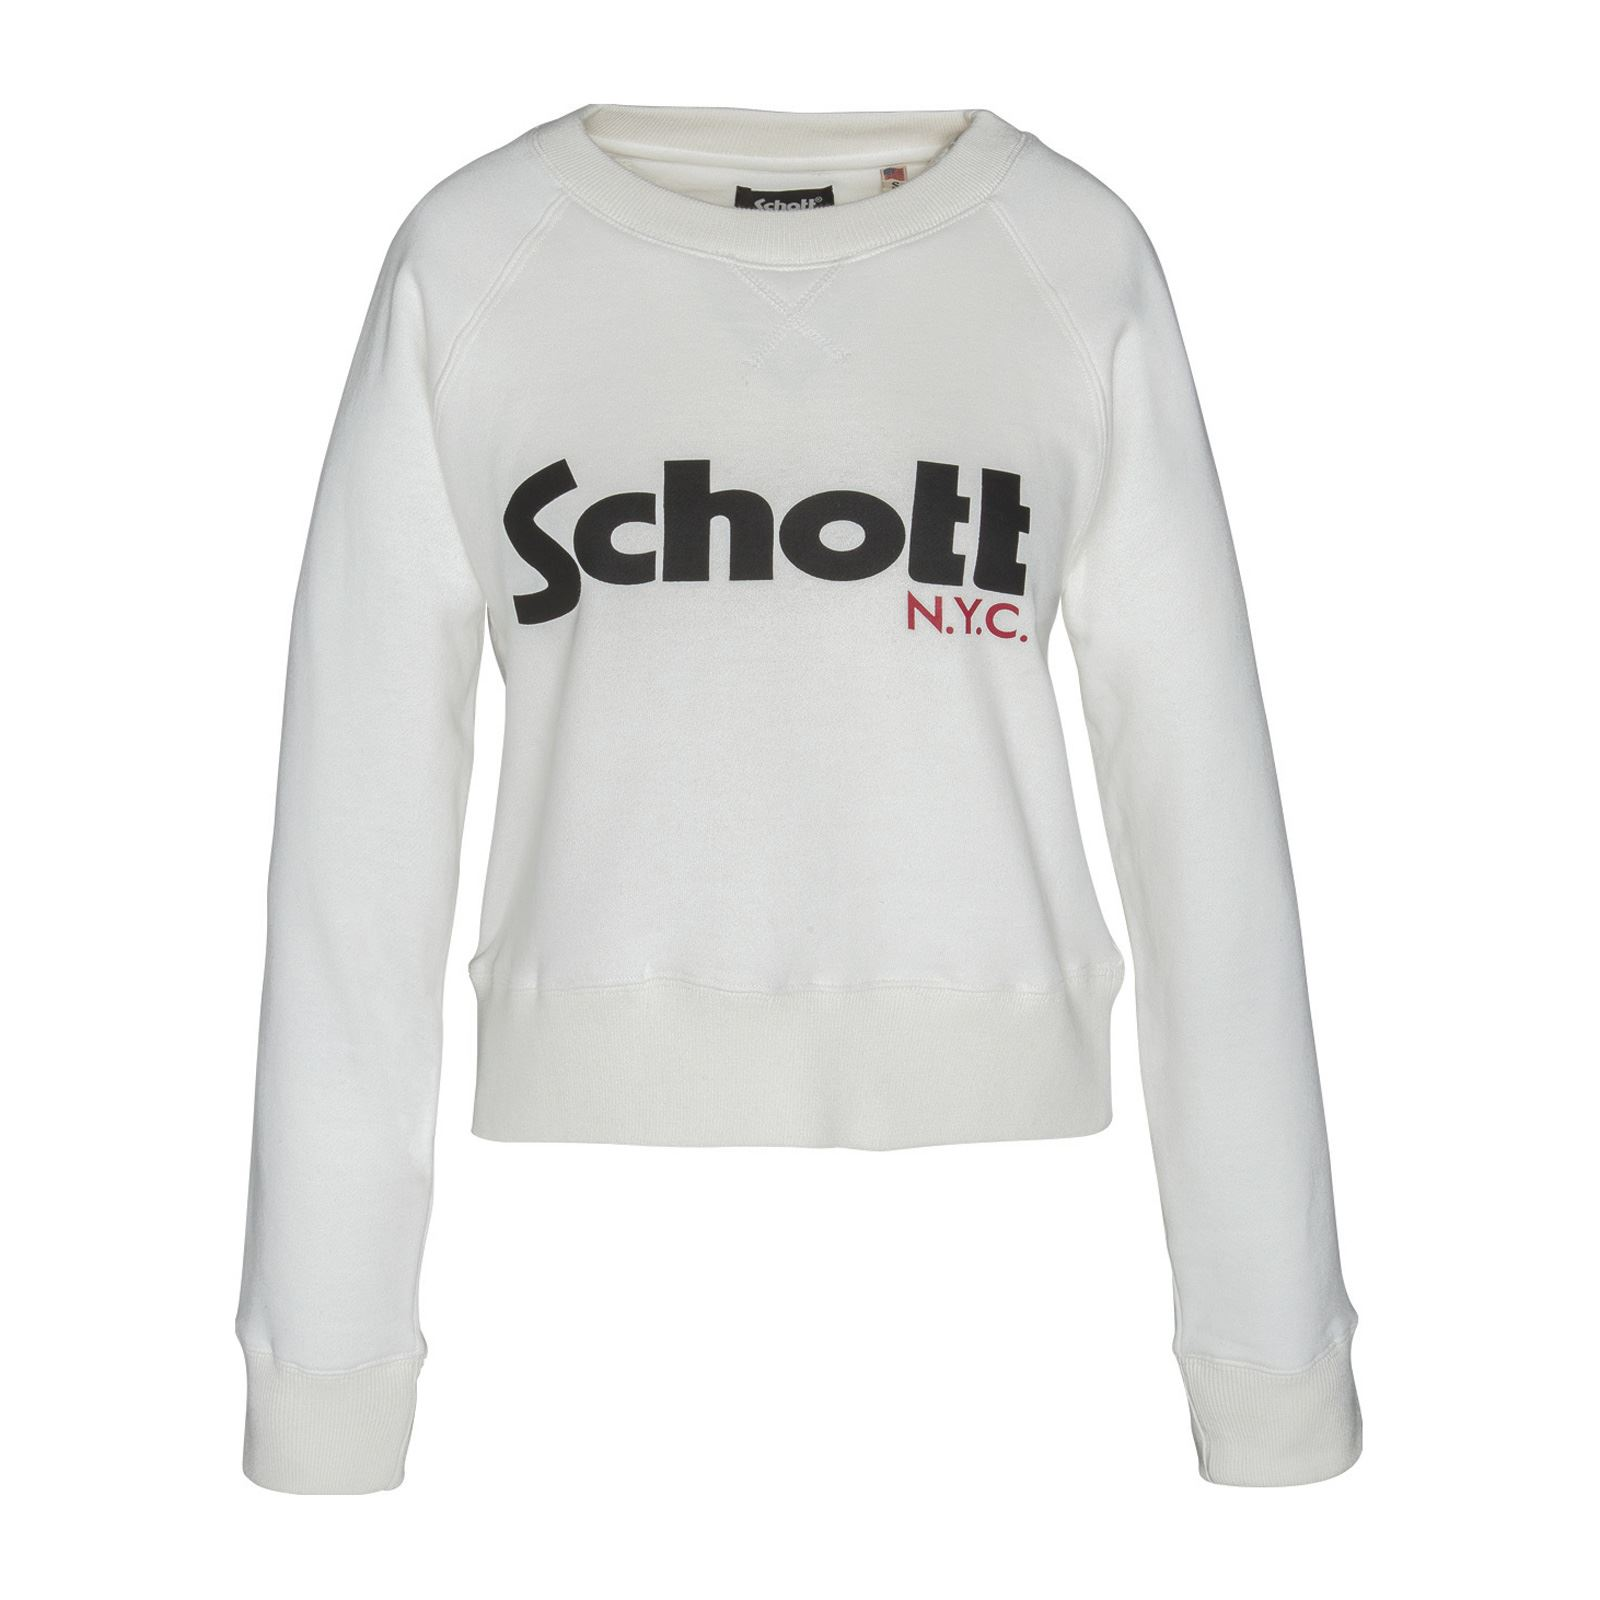 Schott Brandalley Shirt Sweat Blanc Blanc Schott Shirt Sweat Blanc Sweat Shirt Brandalley Schott 1q1HB